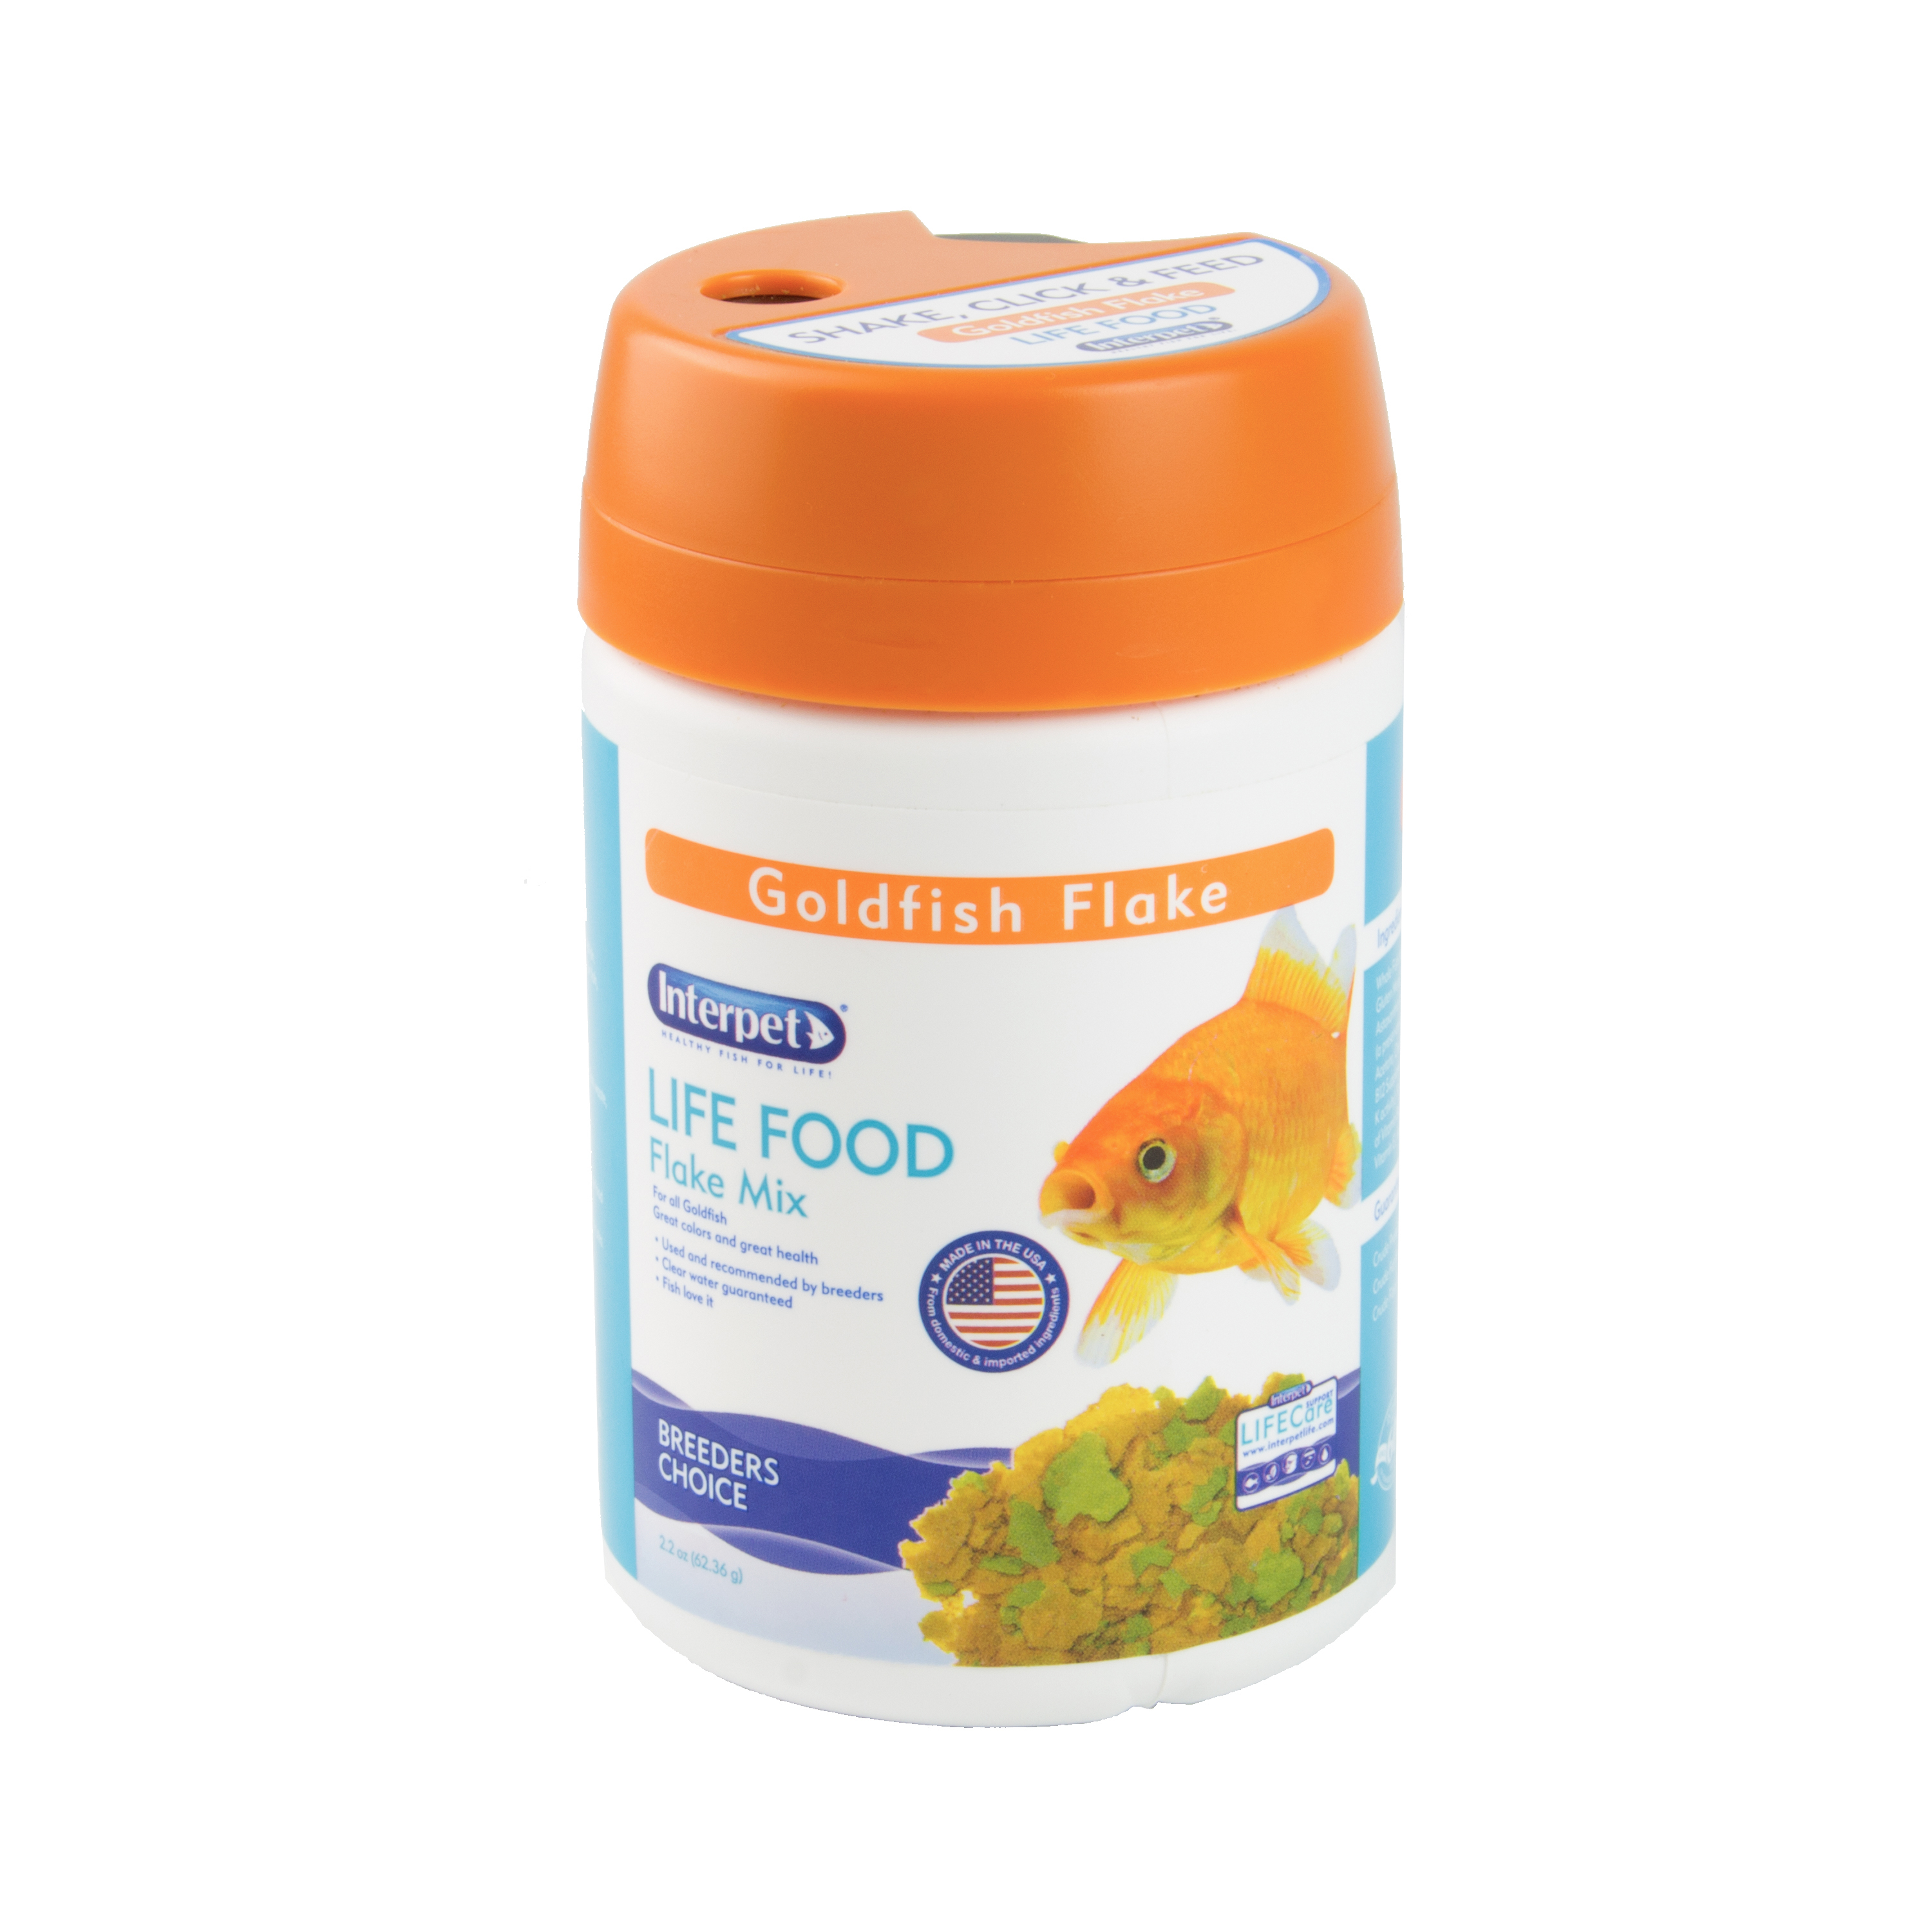 Interpet LIFE FOOD Goldfish Fish Food Flakes, 2.2oz by Central Garden and Pet